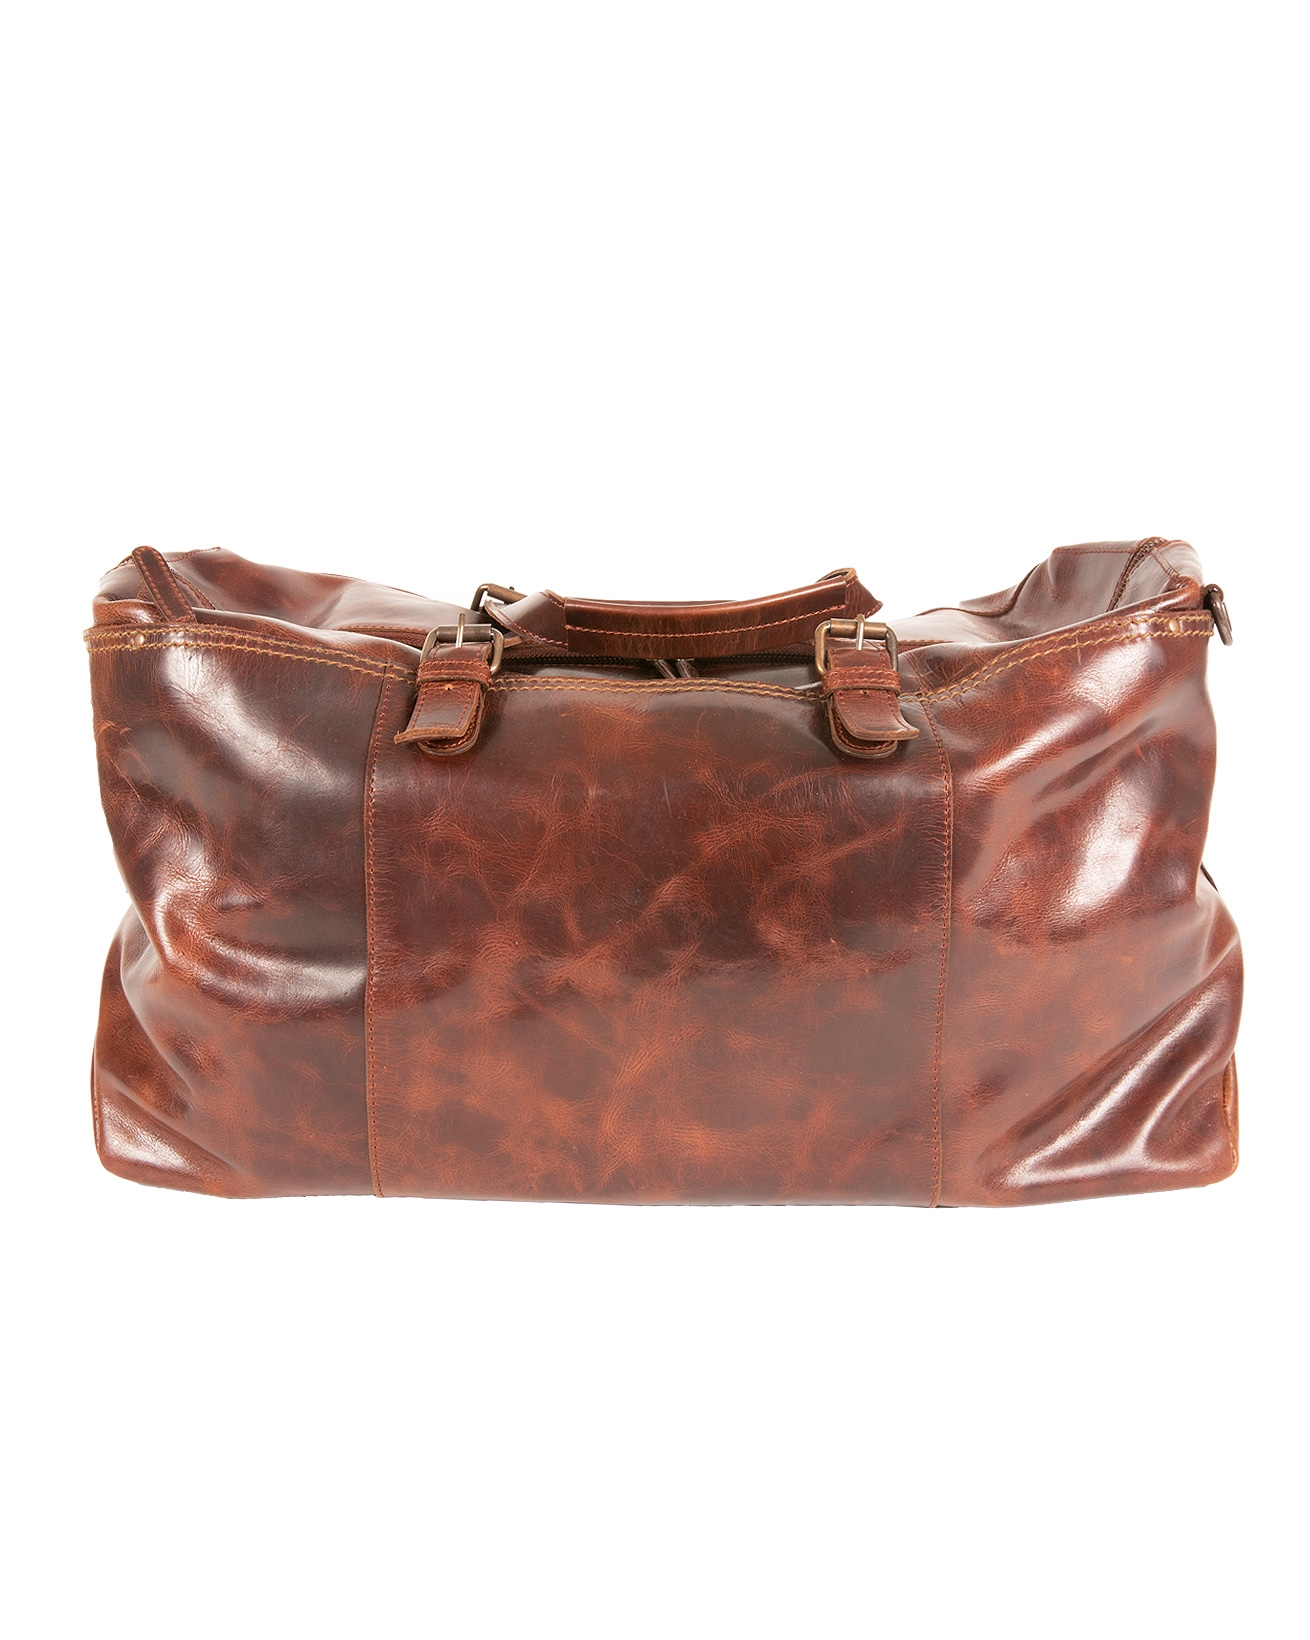 7539-burnished holdall-chestnut-back.jpg